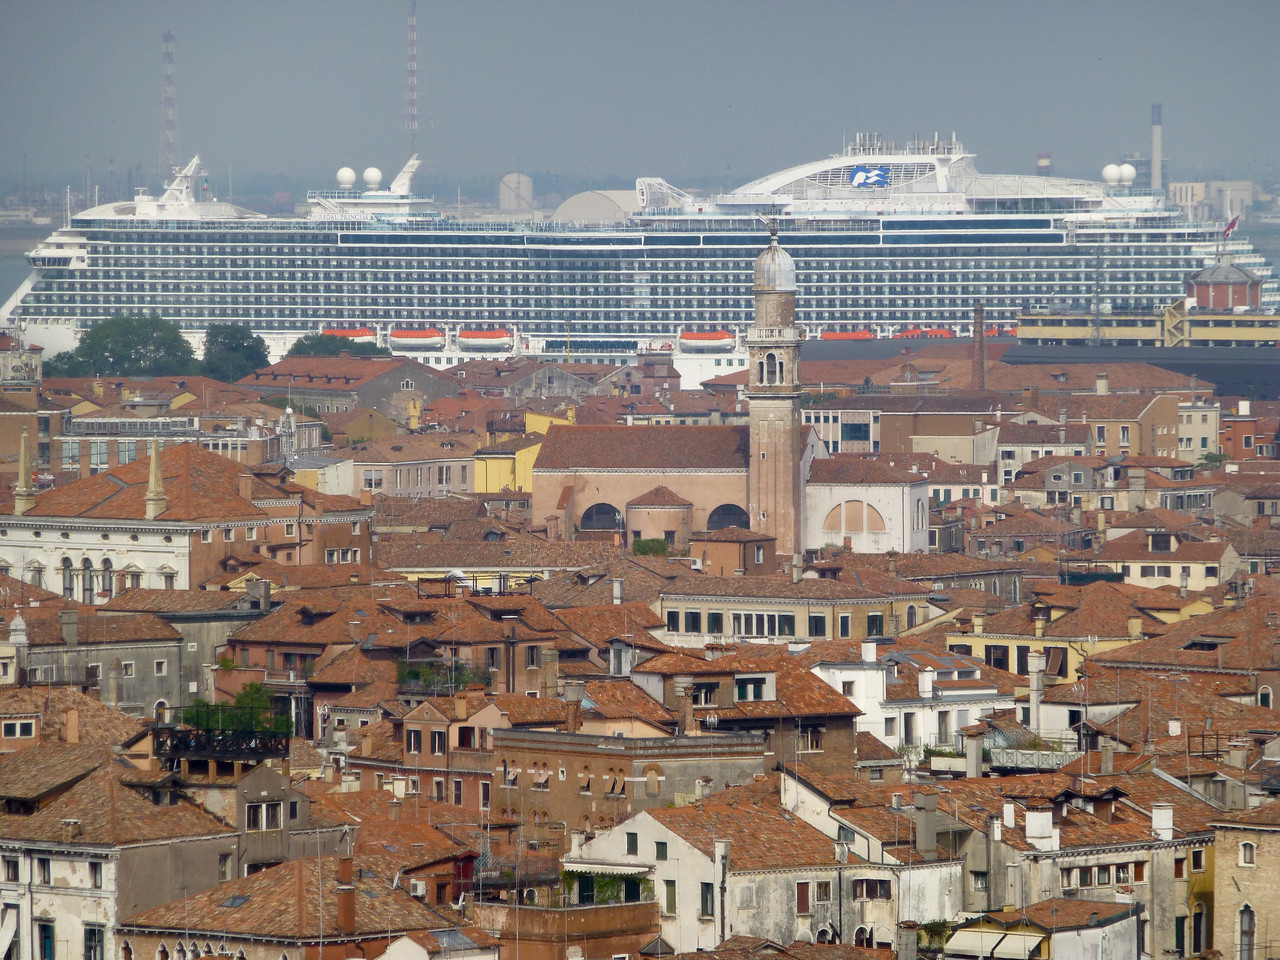 From the Campanile, looking west over the Sestieri of San Marco, Dorsoduro, San Polo, and San Croce to the Regal Princess, berthed in the Bacino Stazione Marittima.